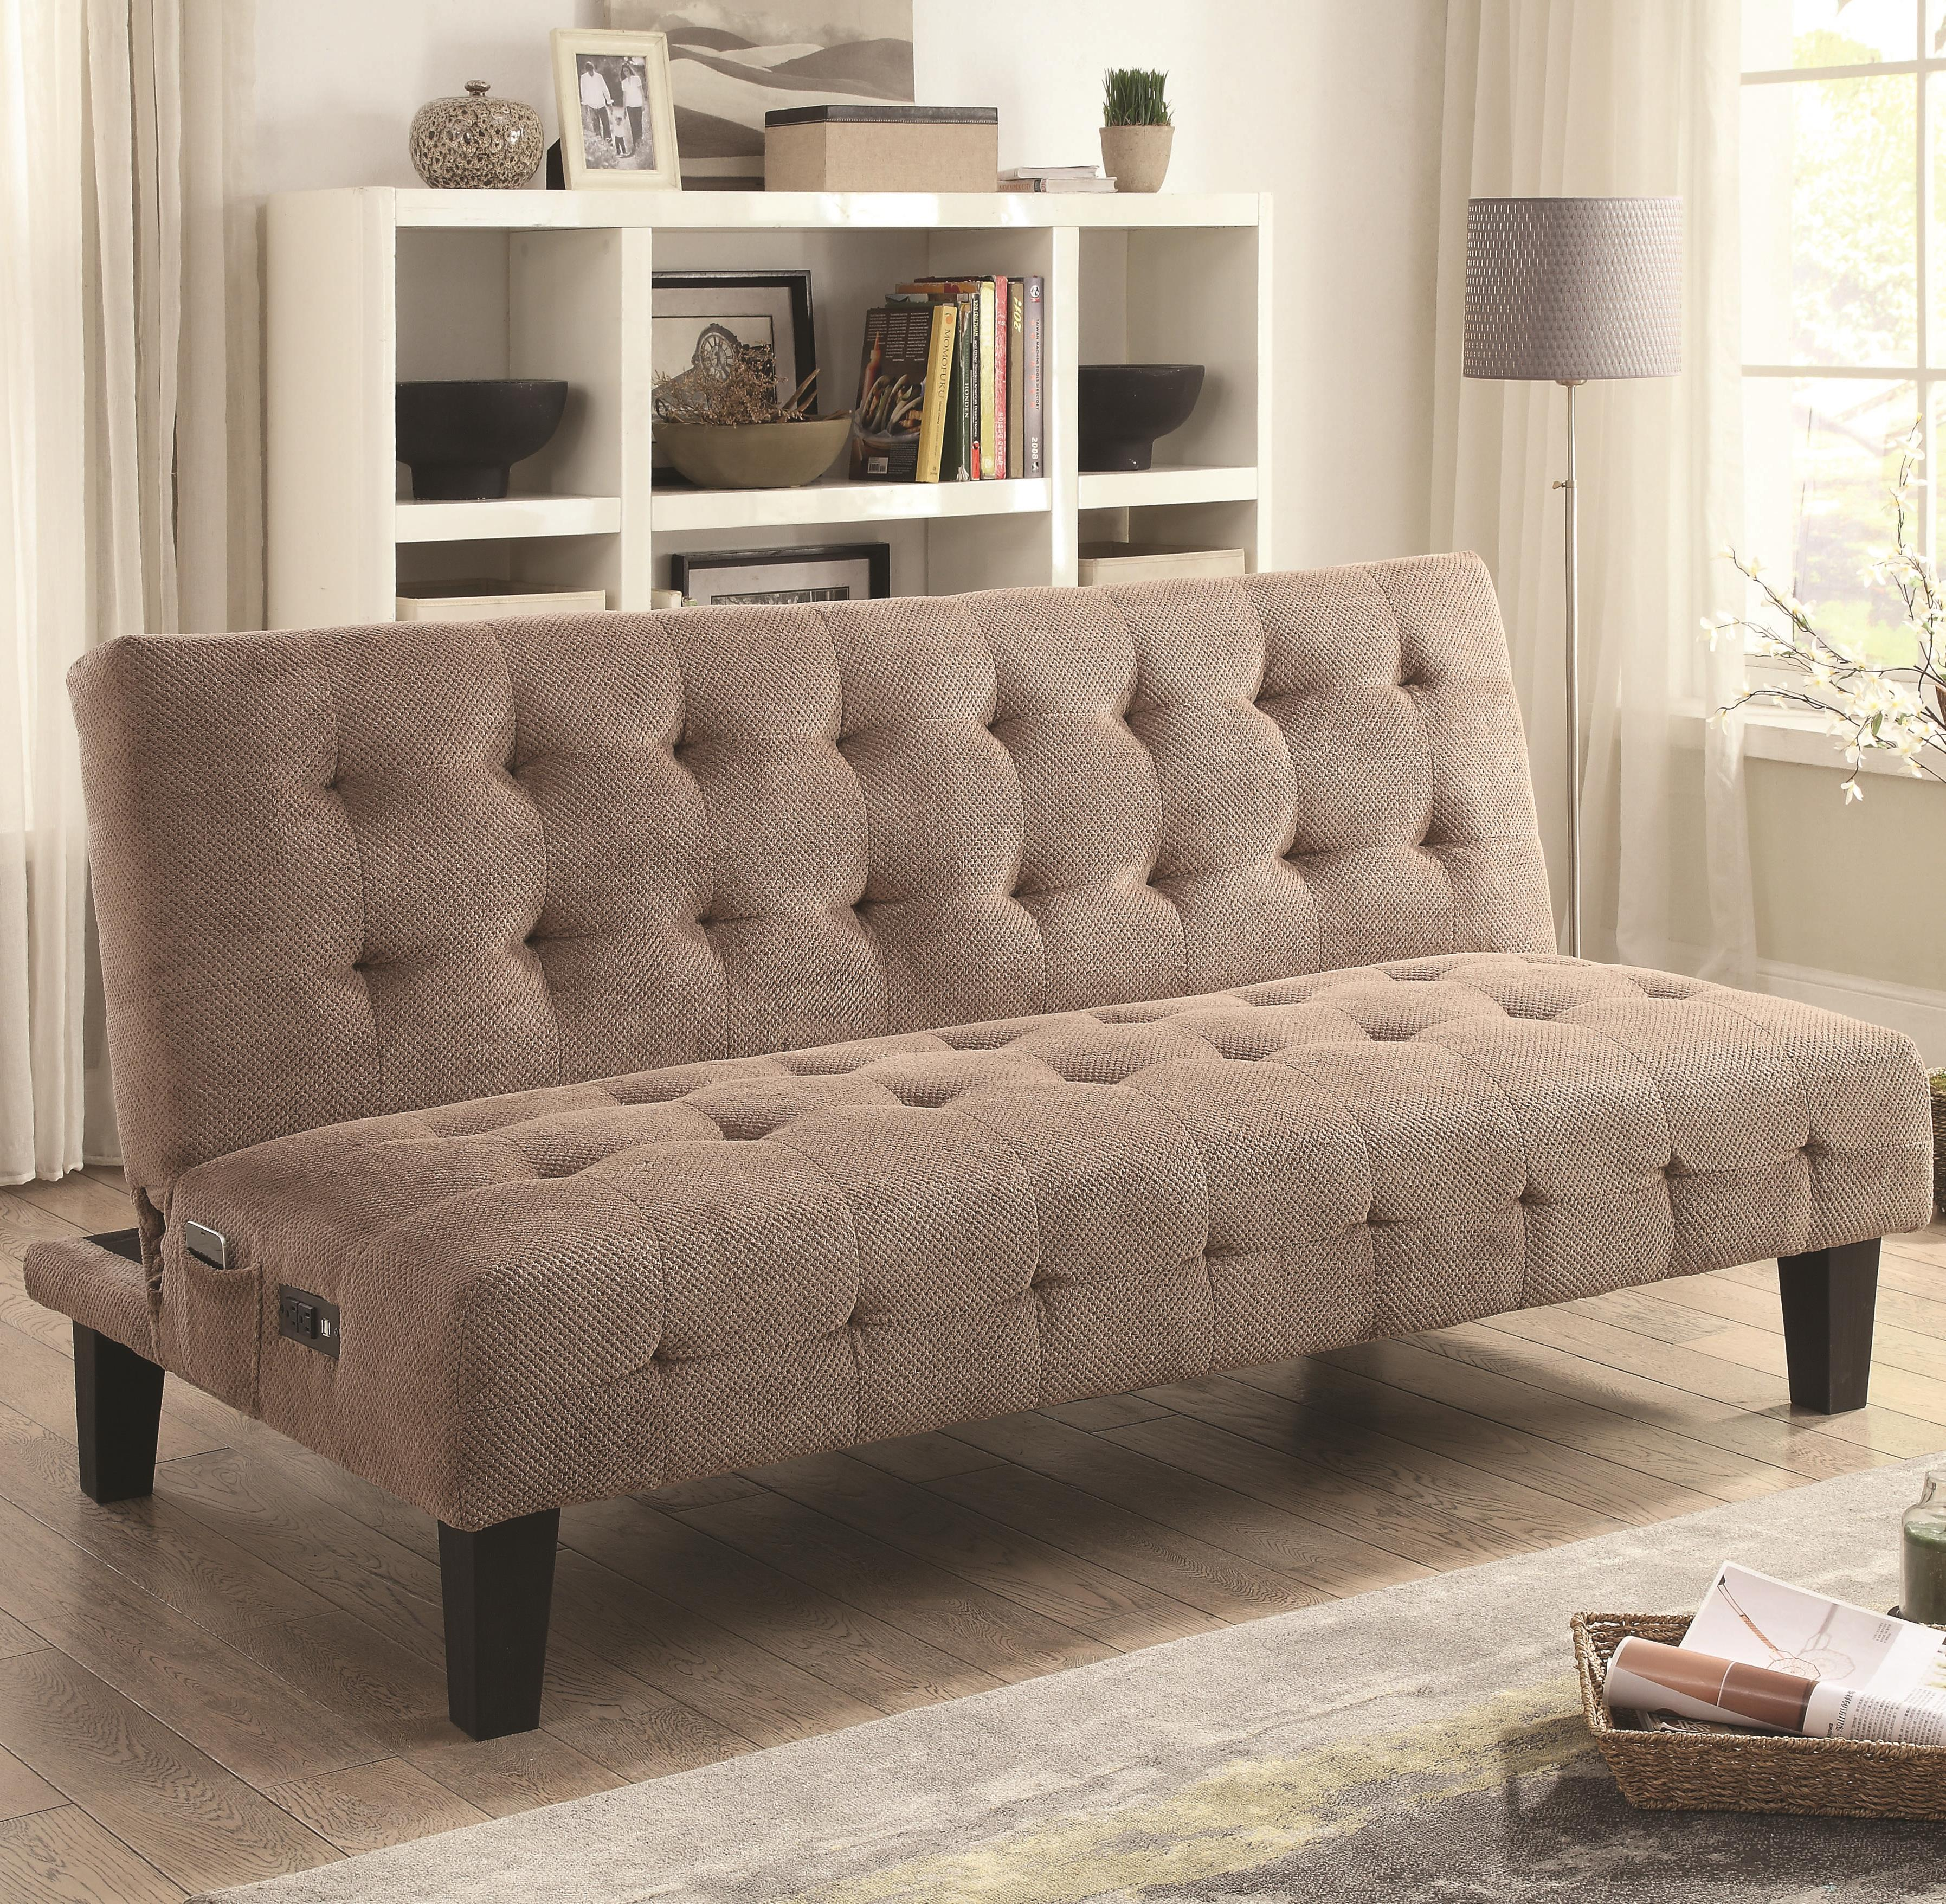 Coaster Sofa Beds and Futons -  Sofa Bed - Item Number: 500295